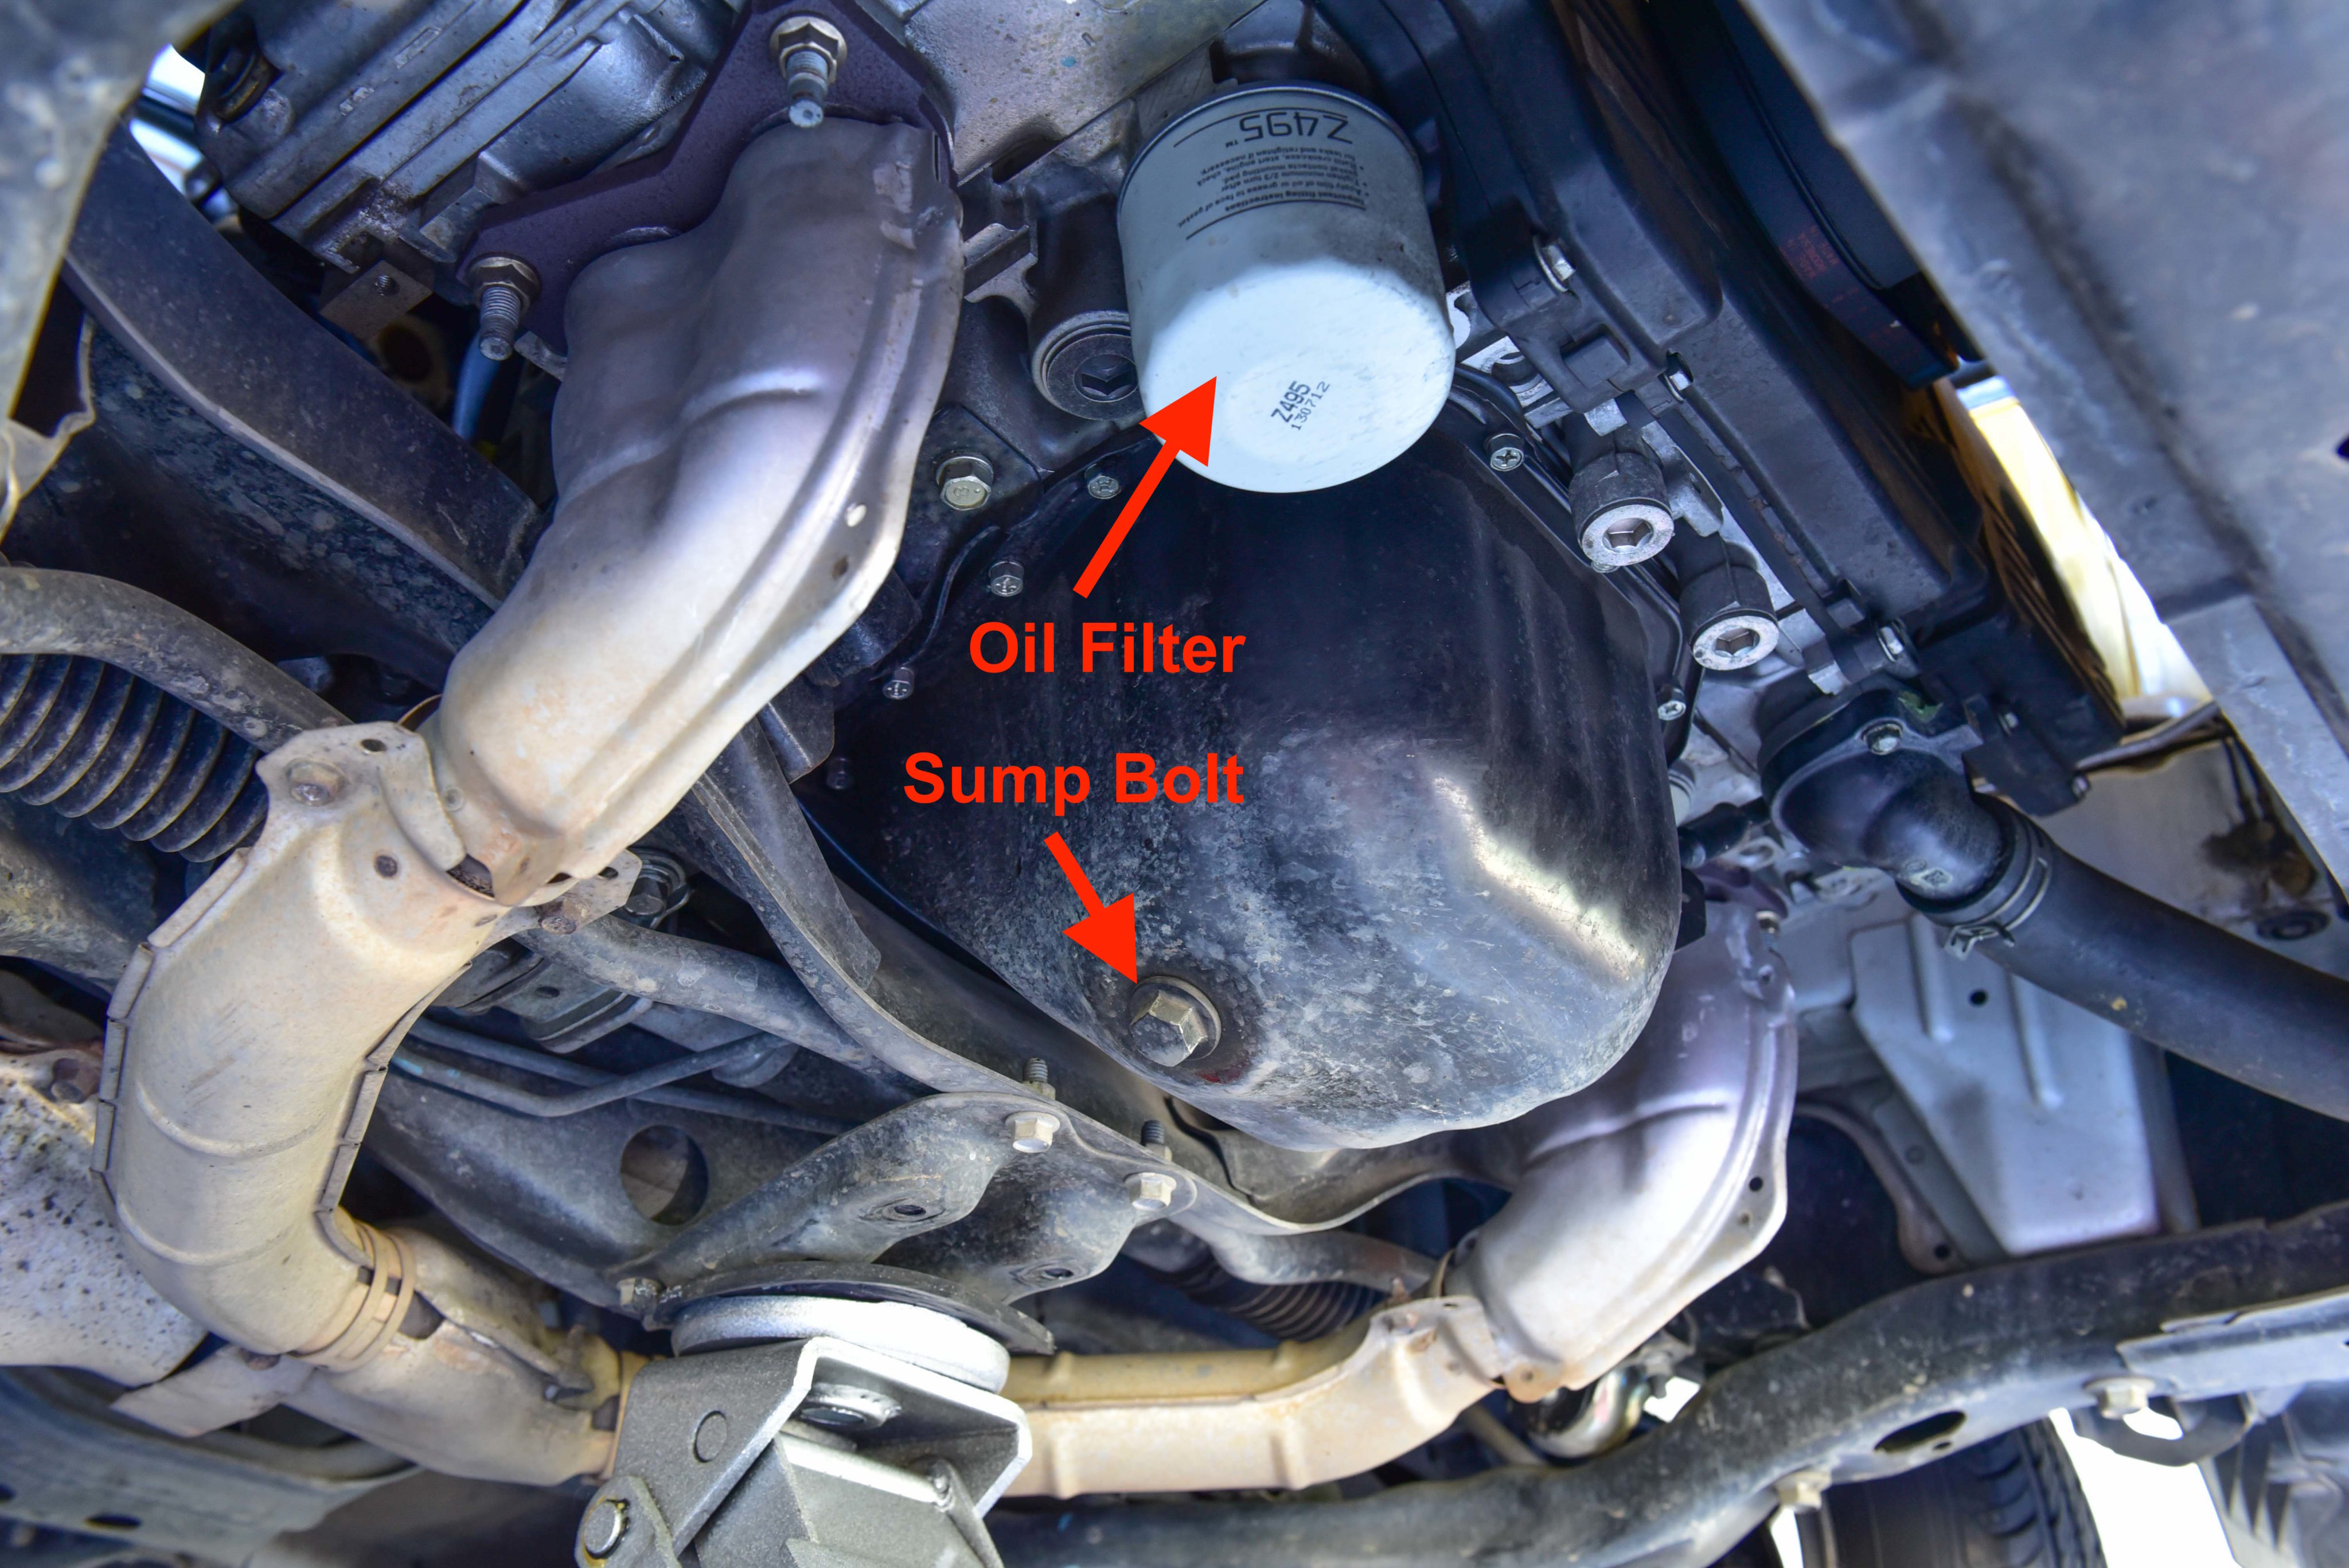 2006 wrx fuel filter location year of clean water2006 subaru wrx fuel filter location 19 [ 4096 x 2734 Pixel ]